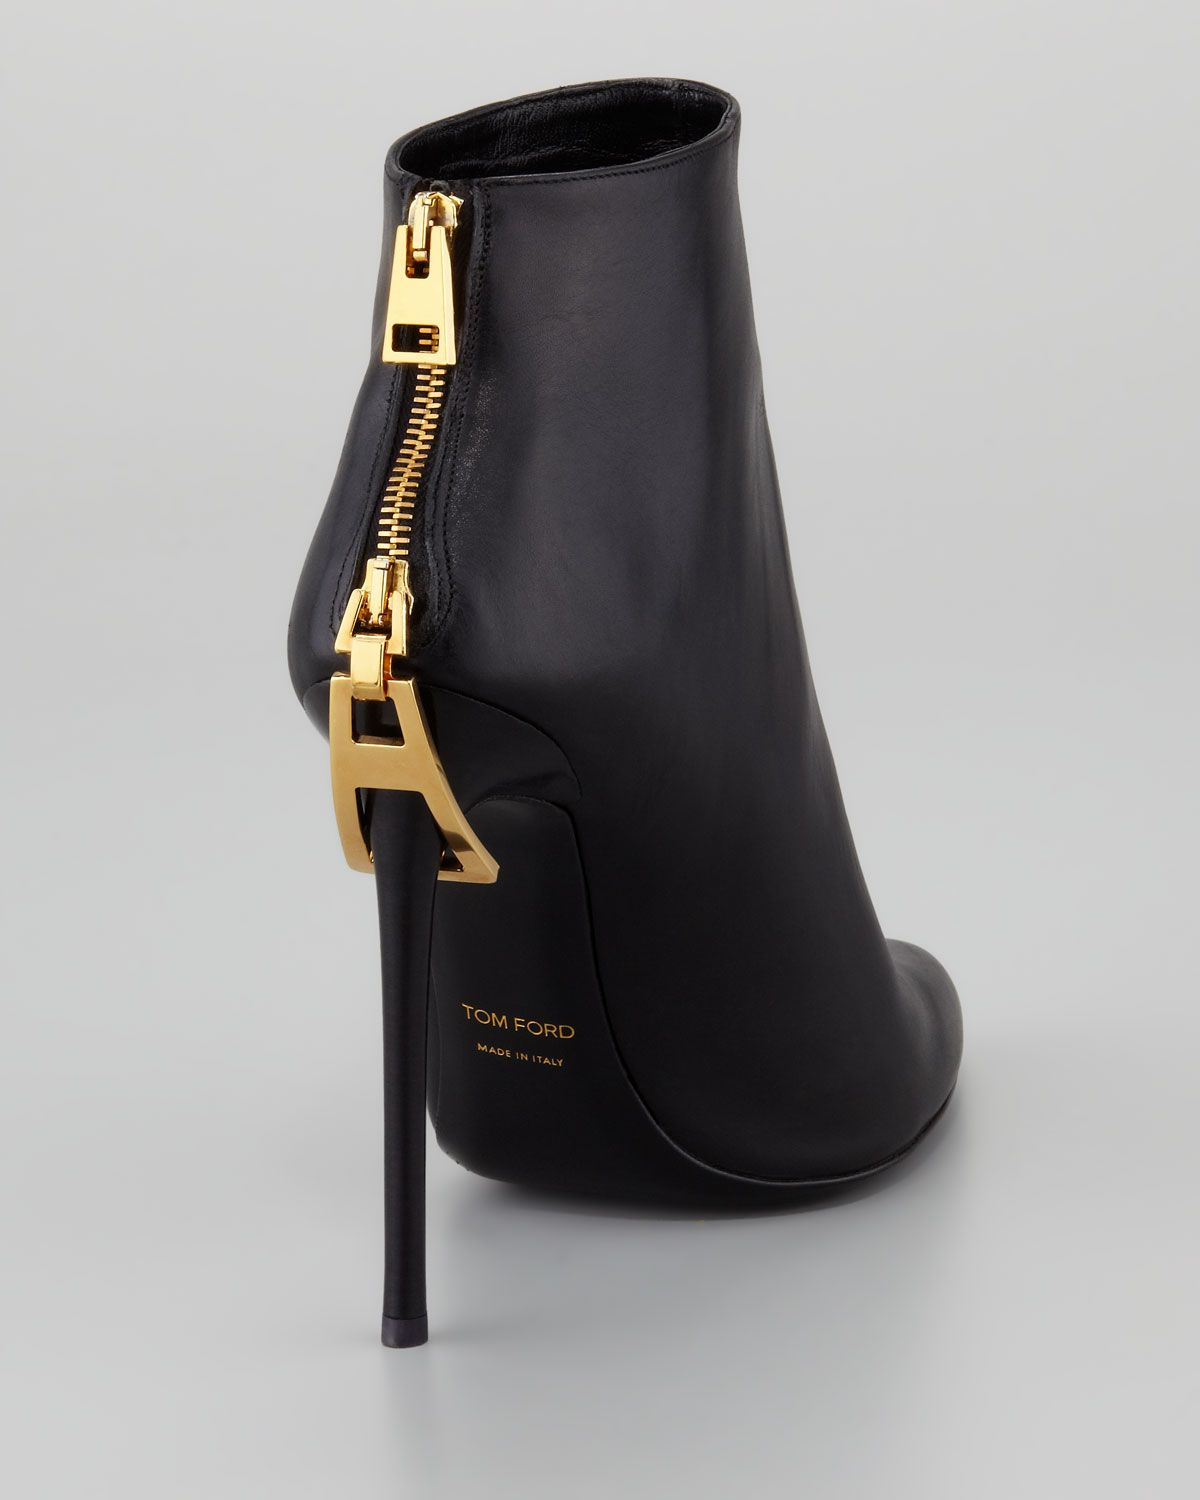 tom ford zipper heel leather ankle boot neiman